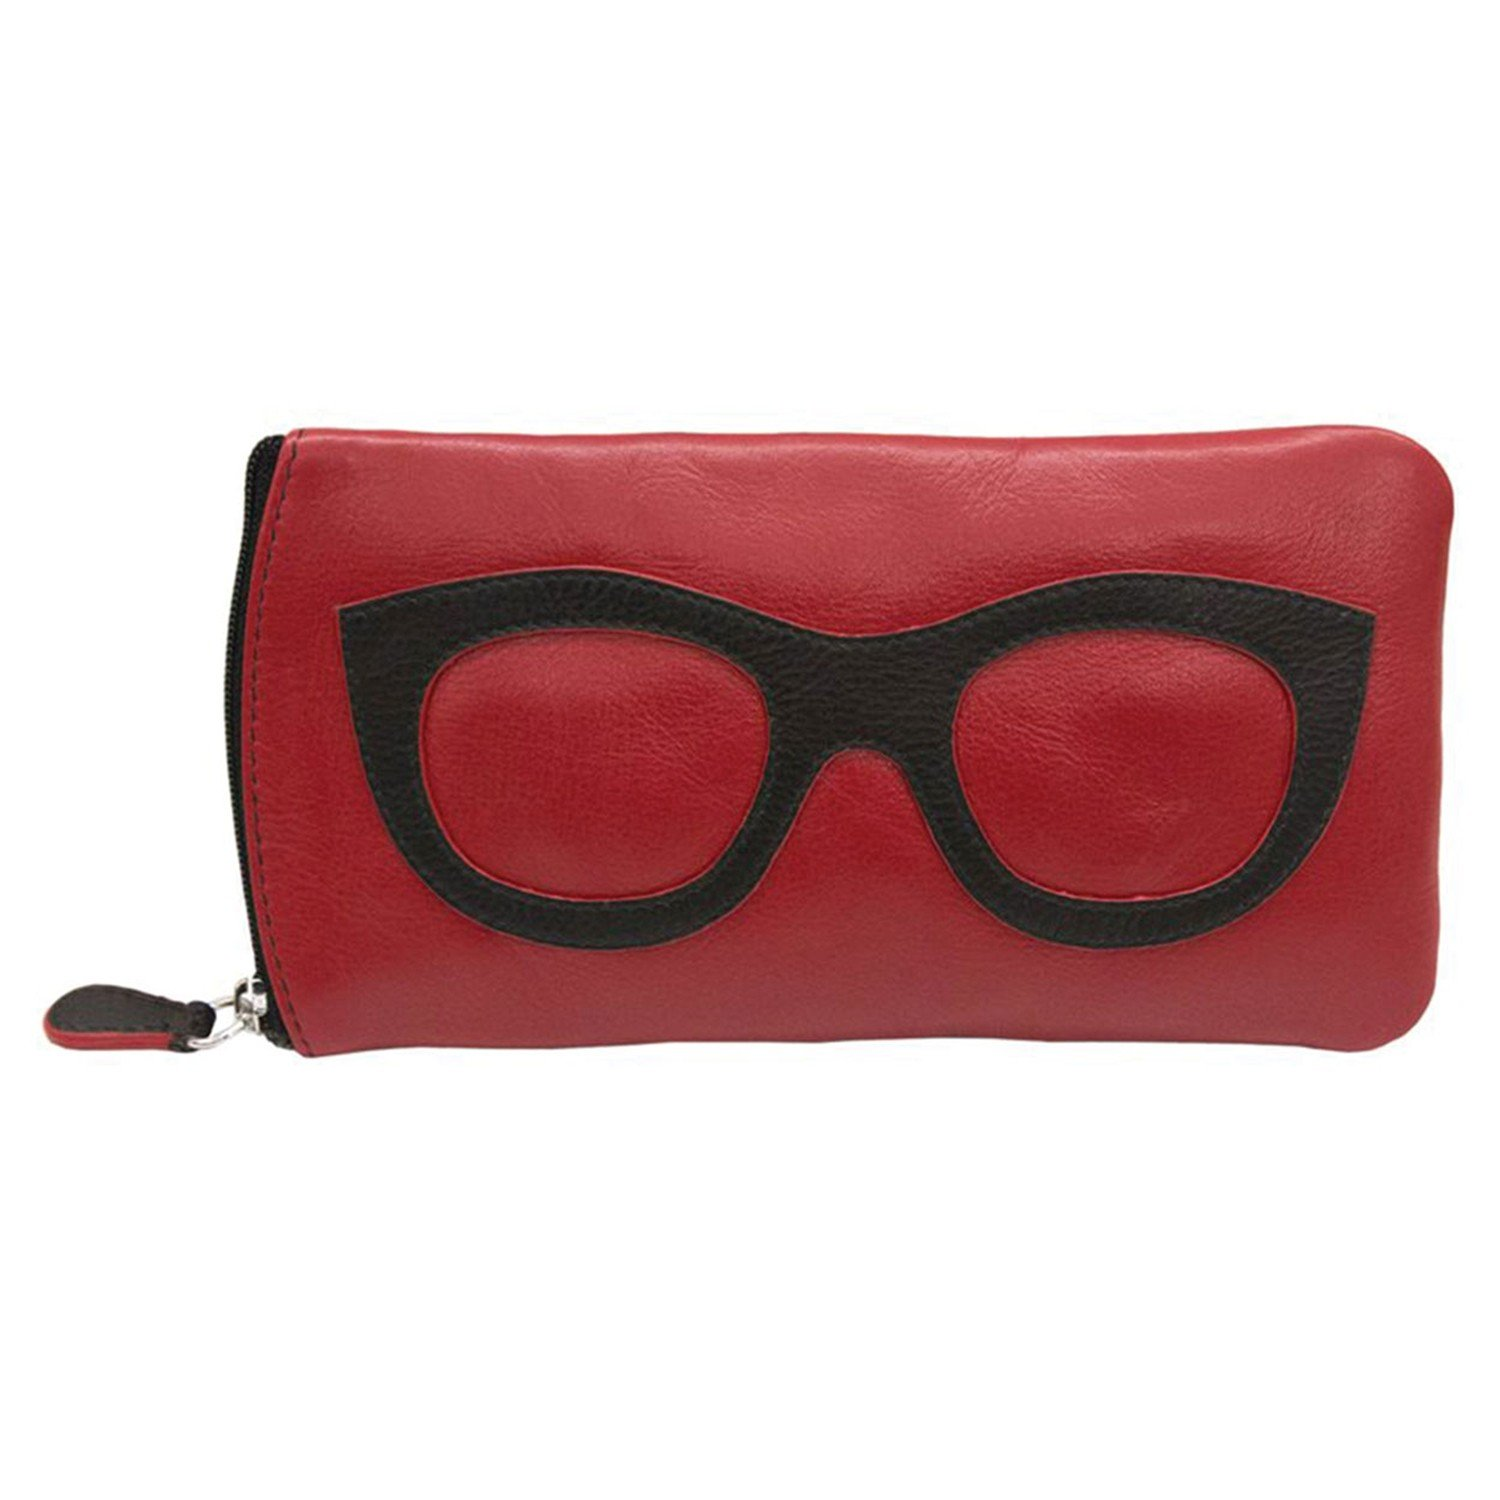 Women's Leather Eyeglasses Case - Zipper Close - 7'' x 4'' - Red with Black